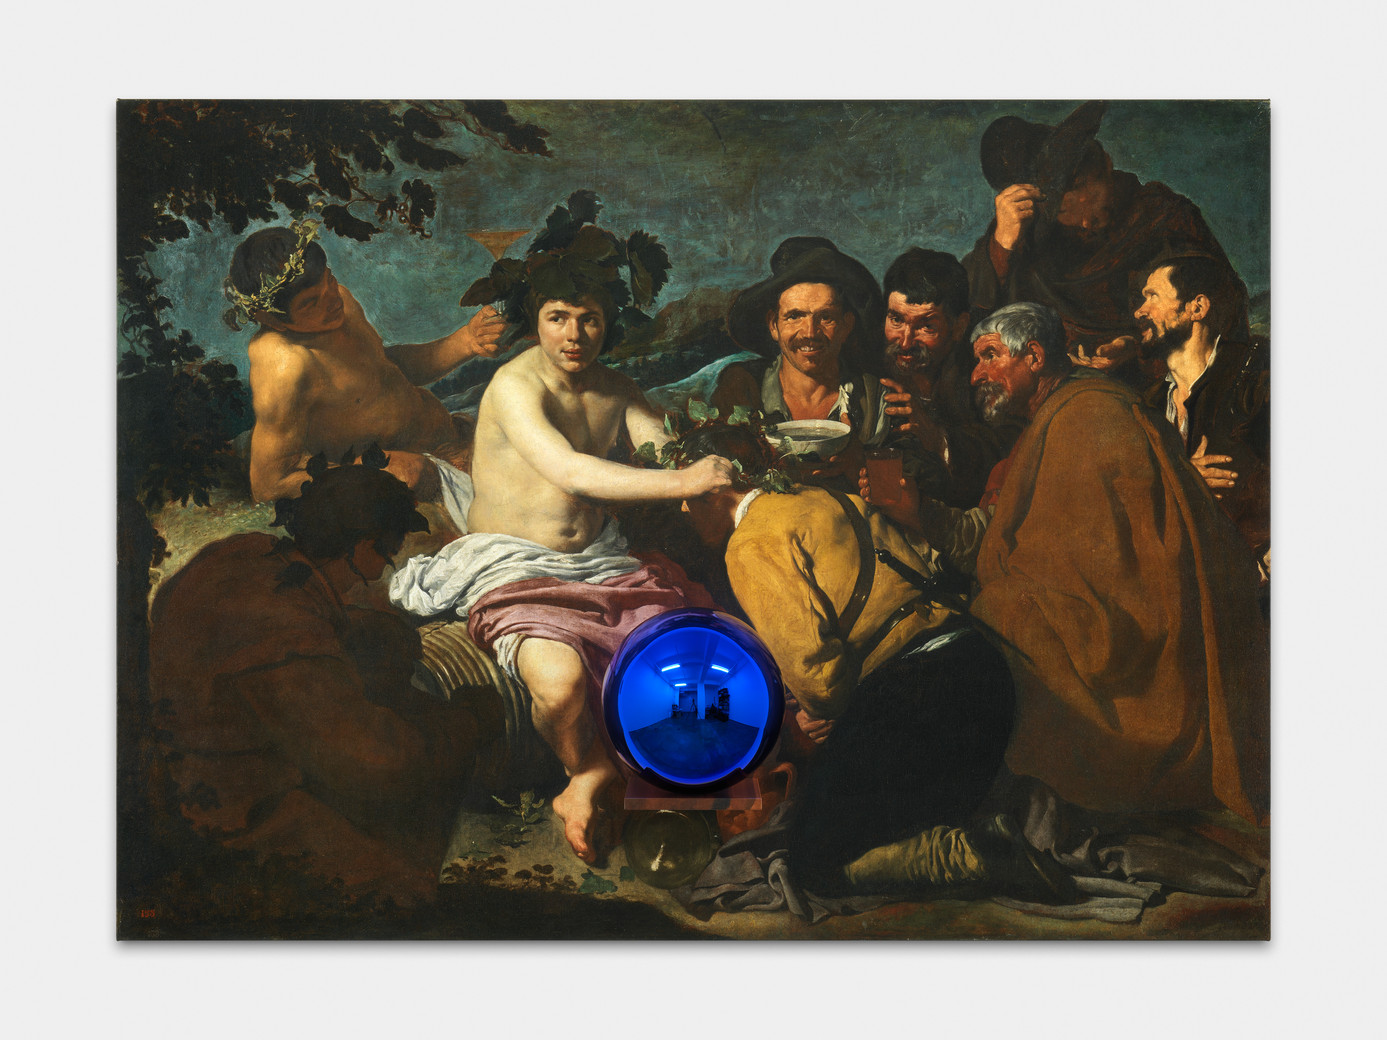 Jeff Koons / David Zwirner Gallery